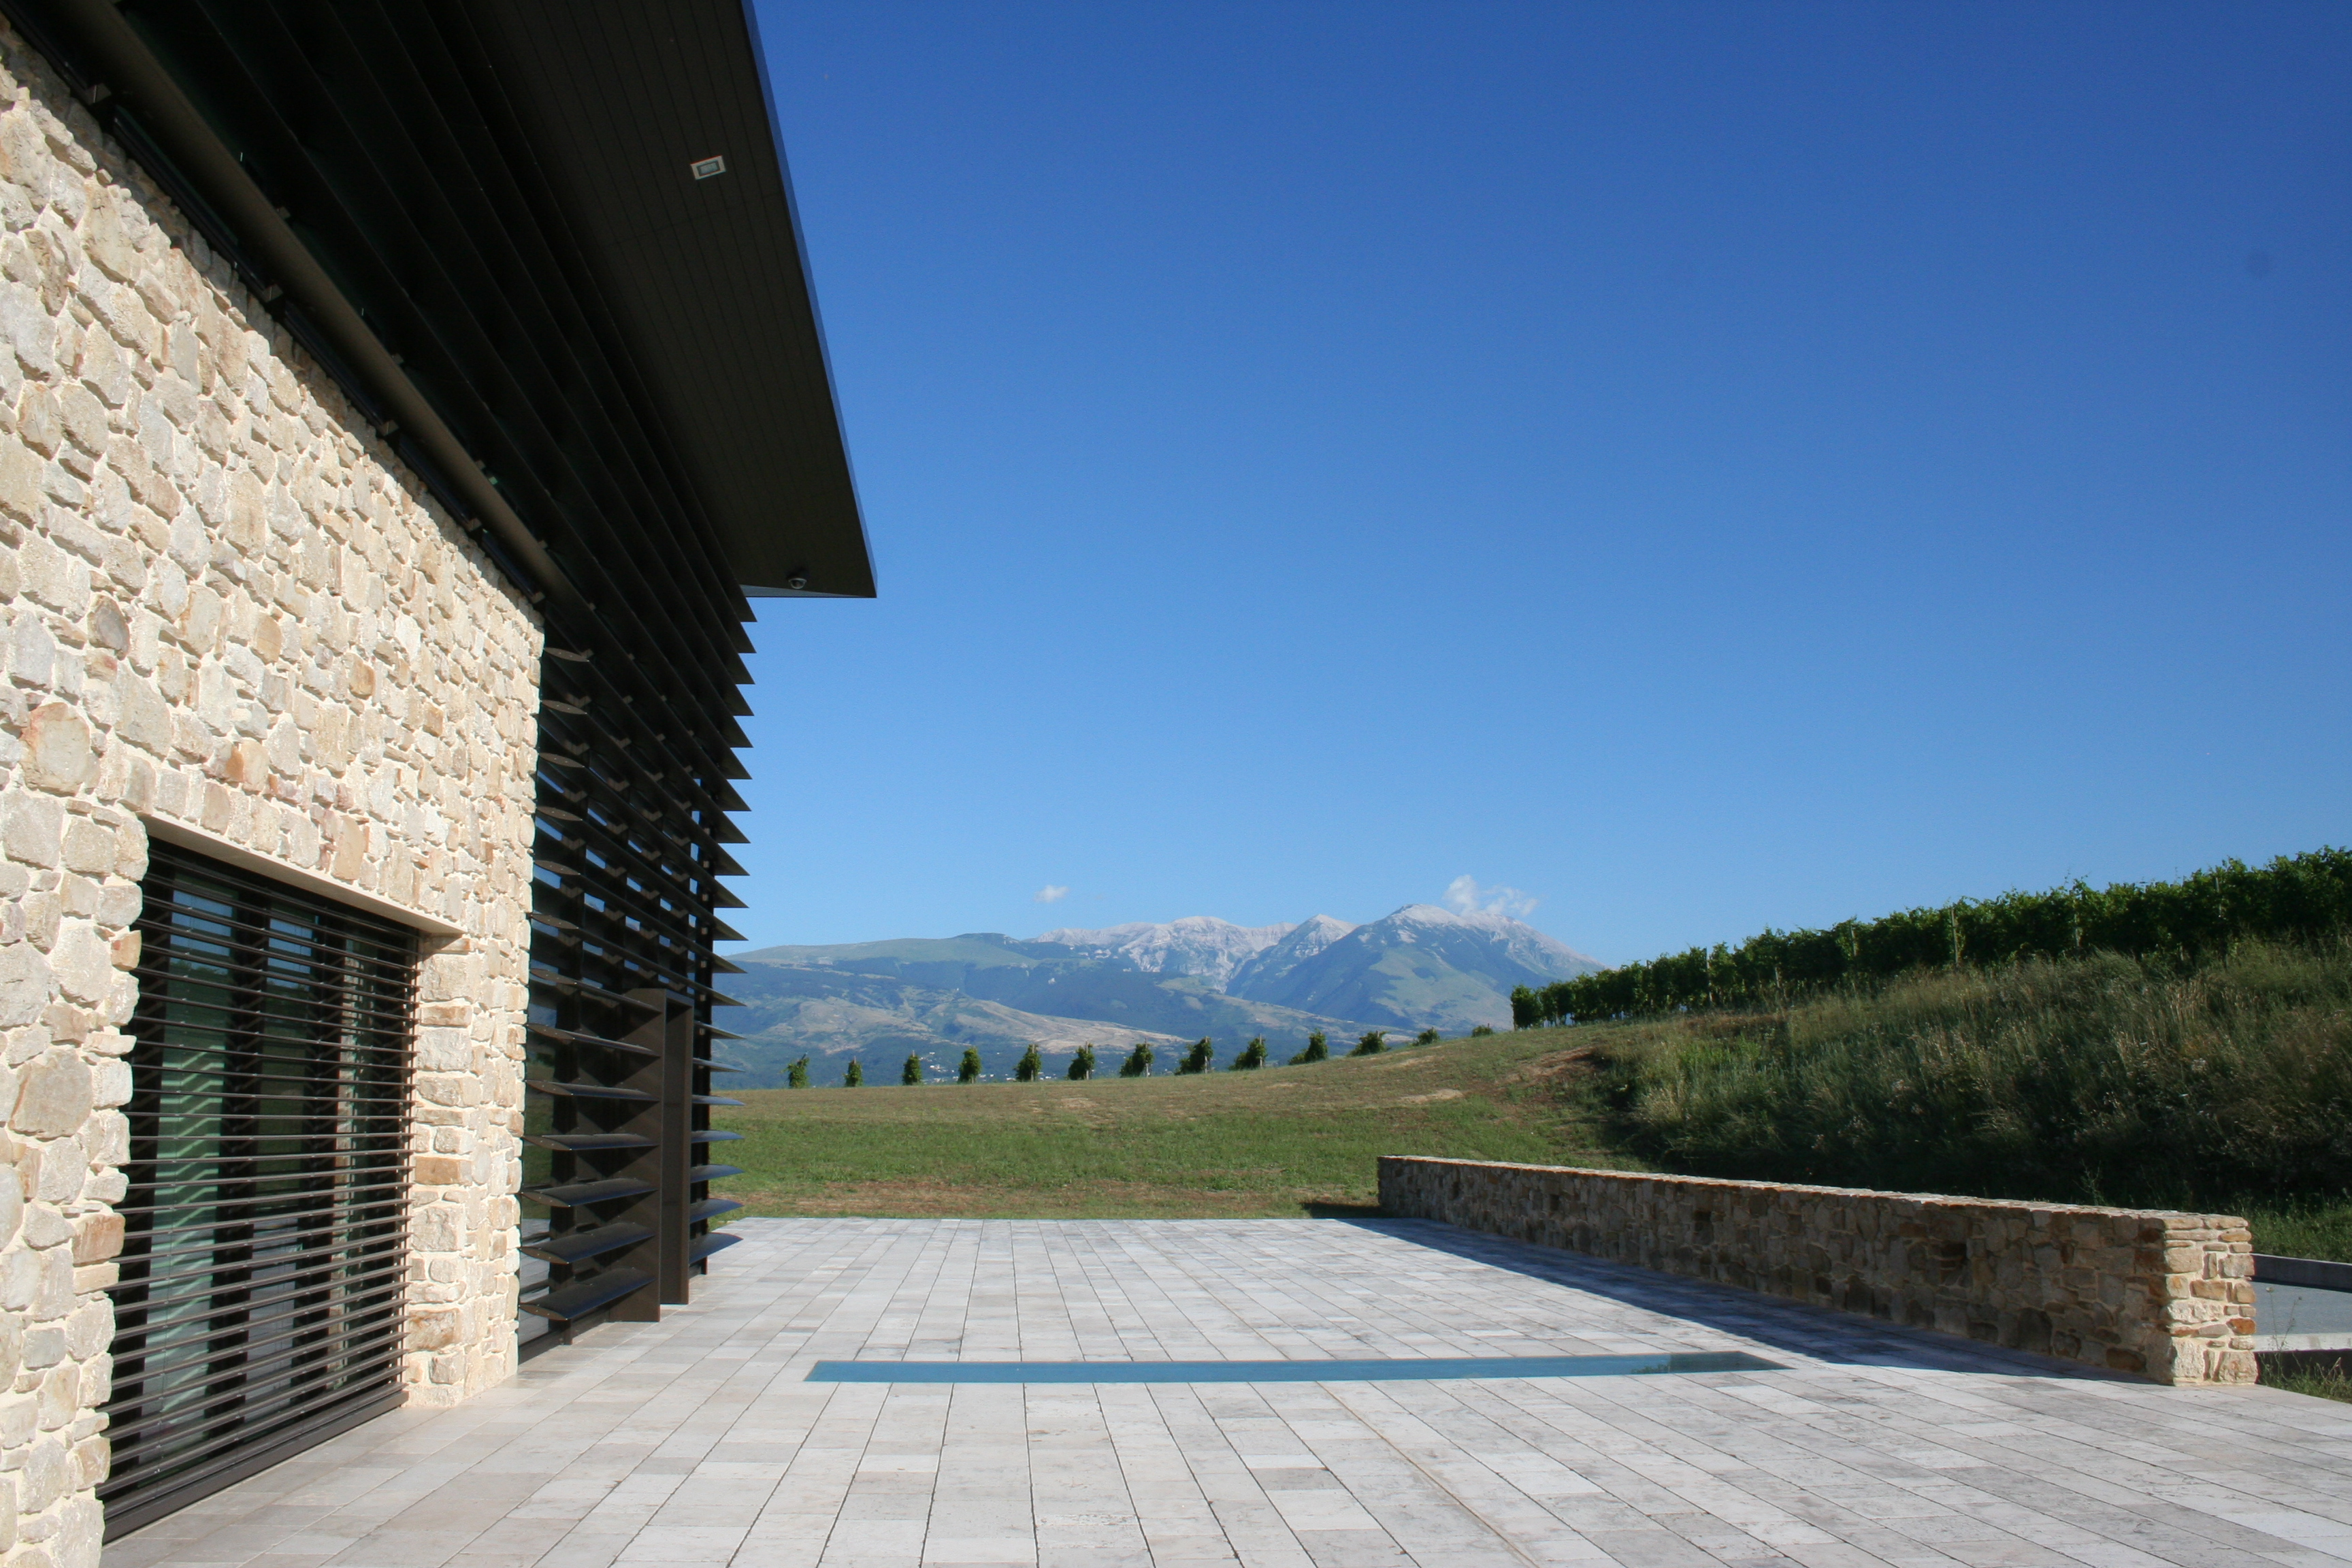 Visit to the Podere Castorani winery and wine and food tasting